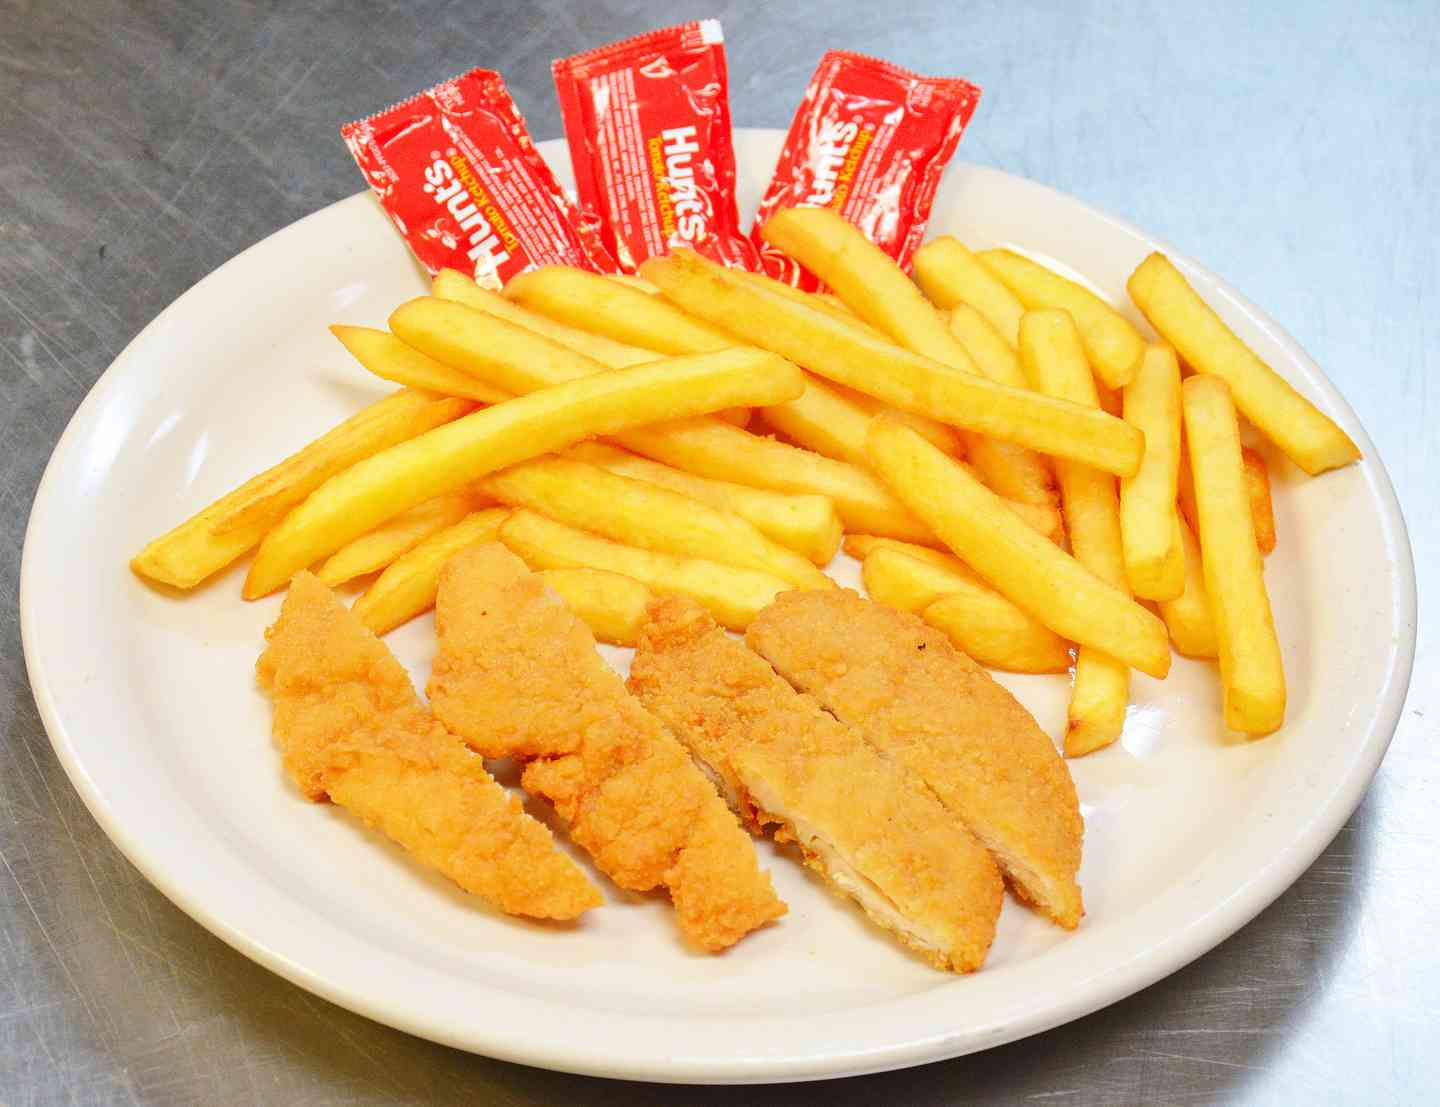 2. Chicken Fingers and Fries